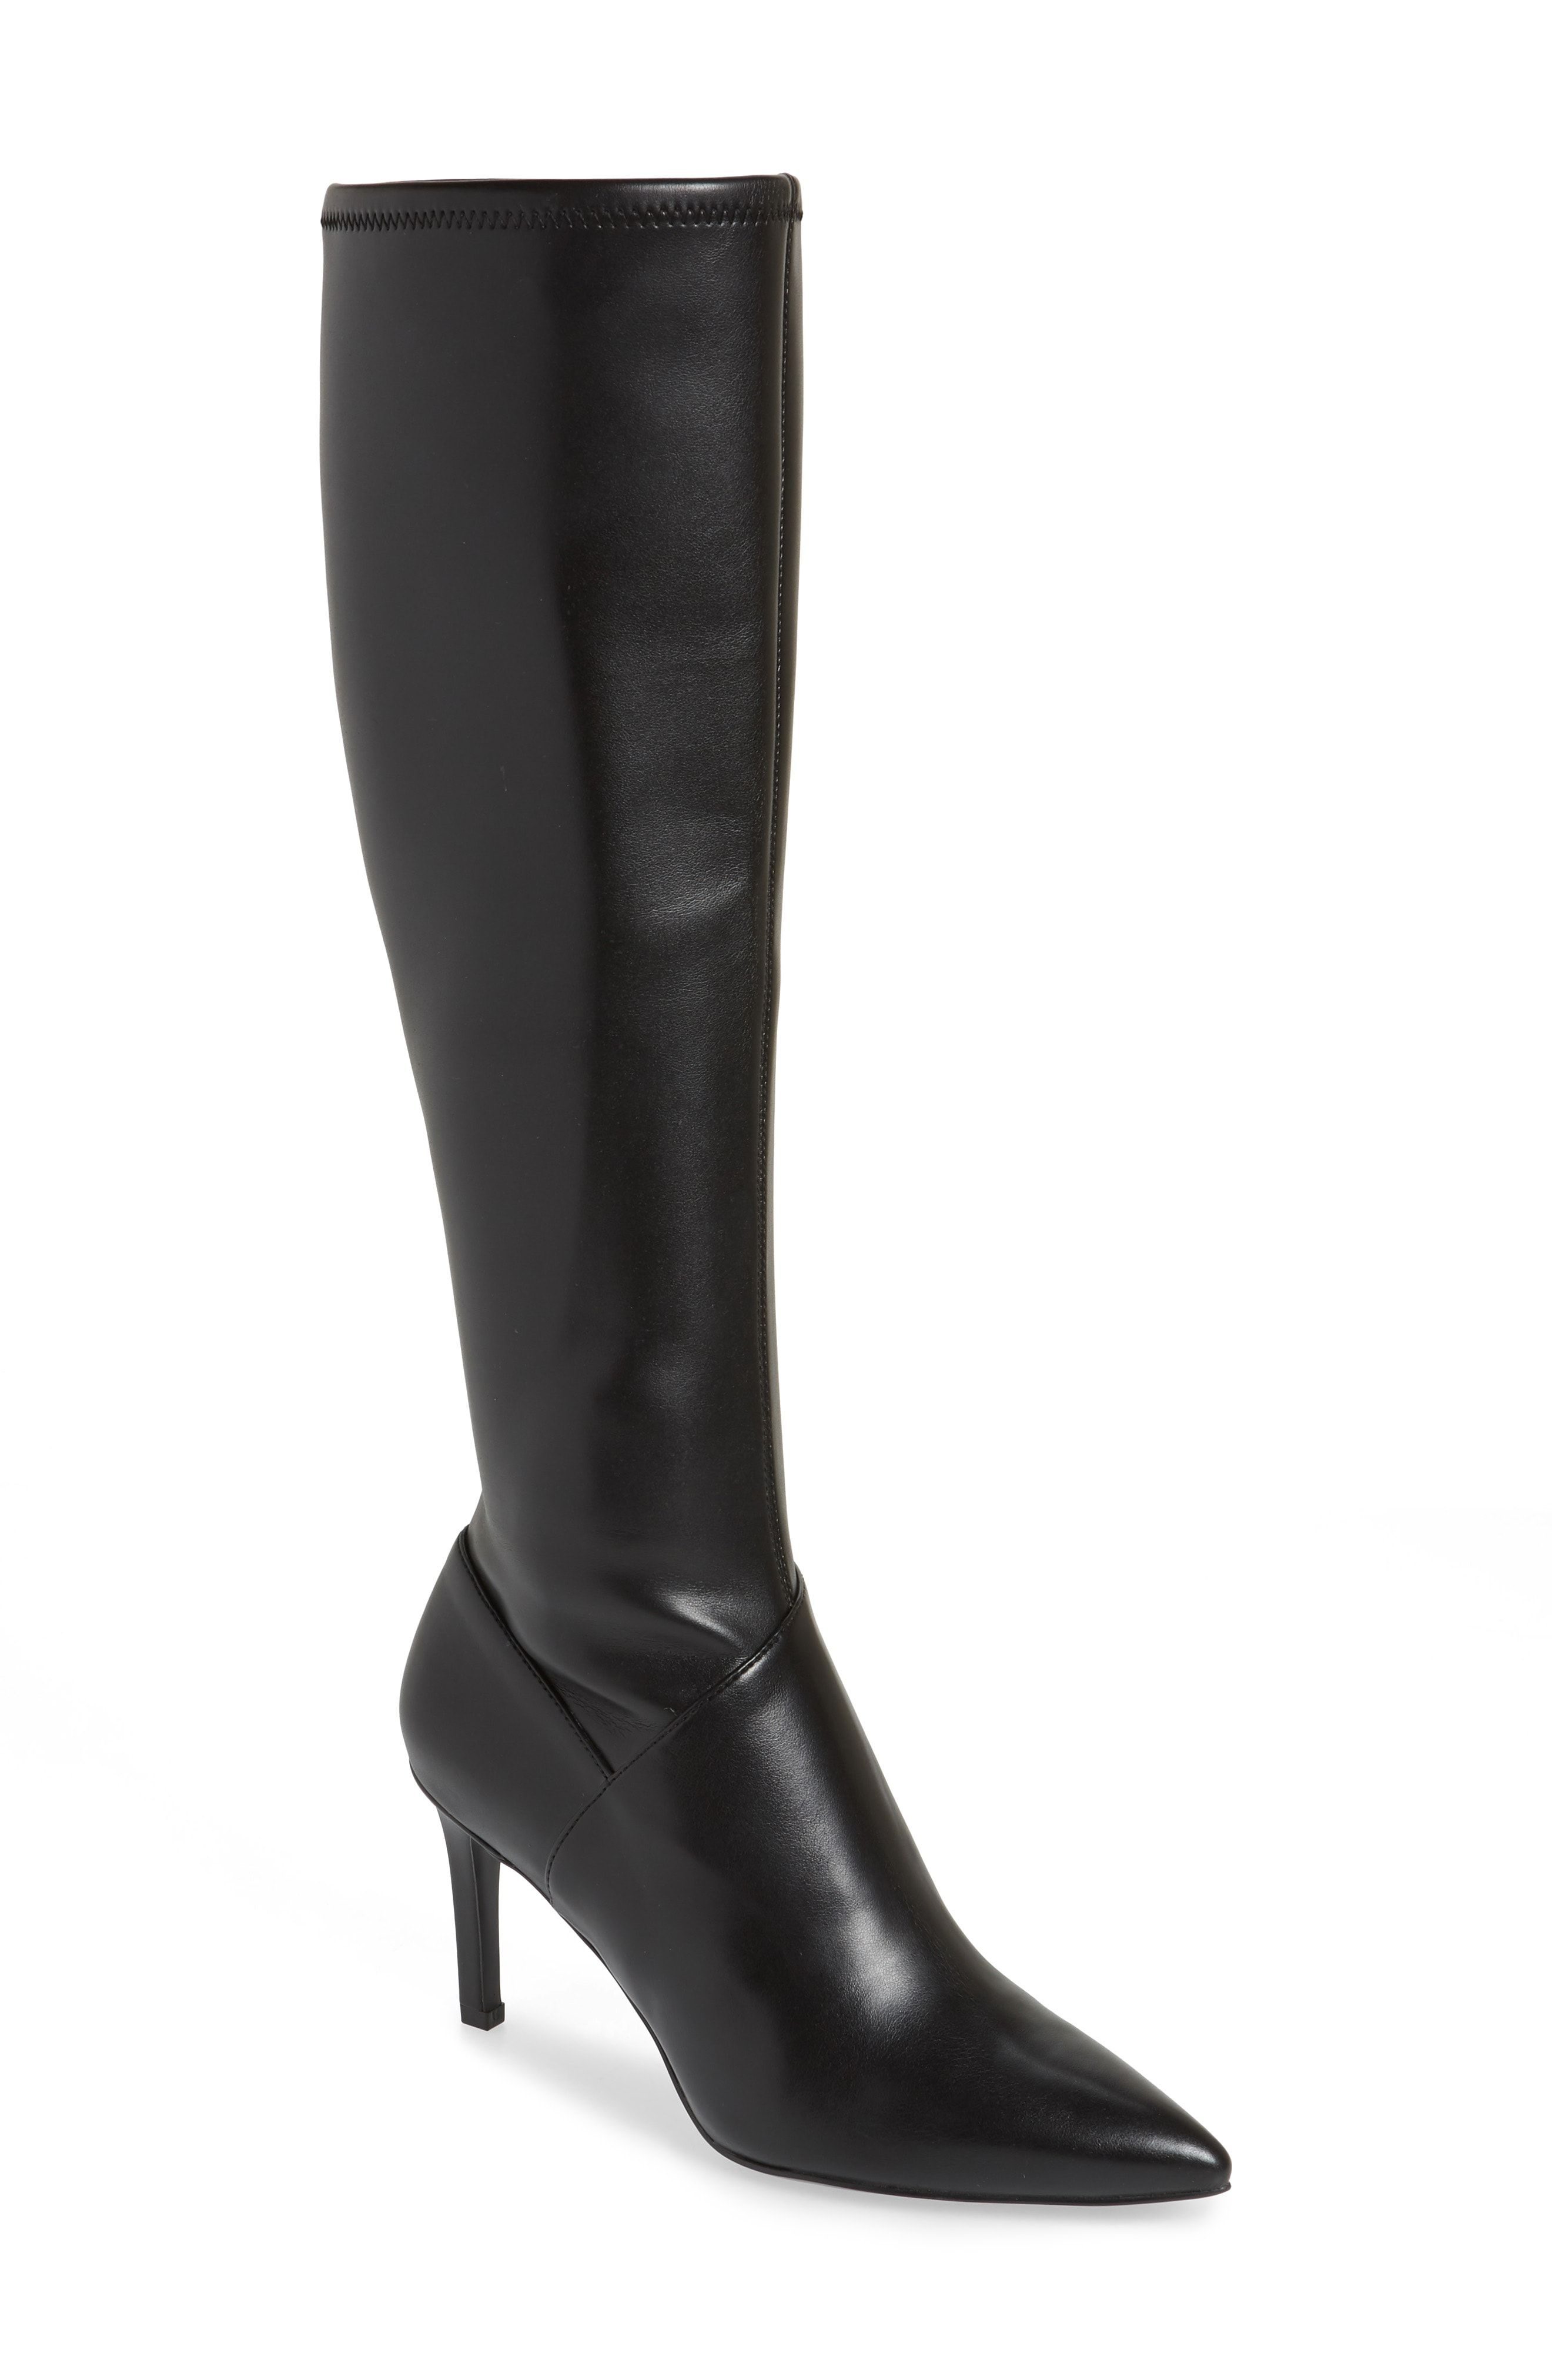 Styleneur.com | High knee boots outfit